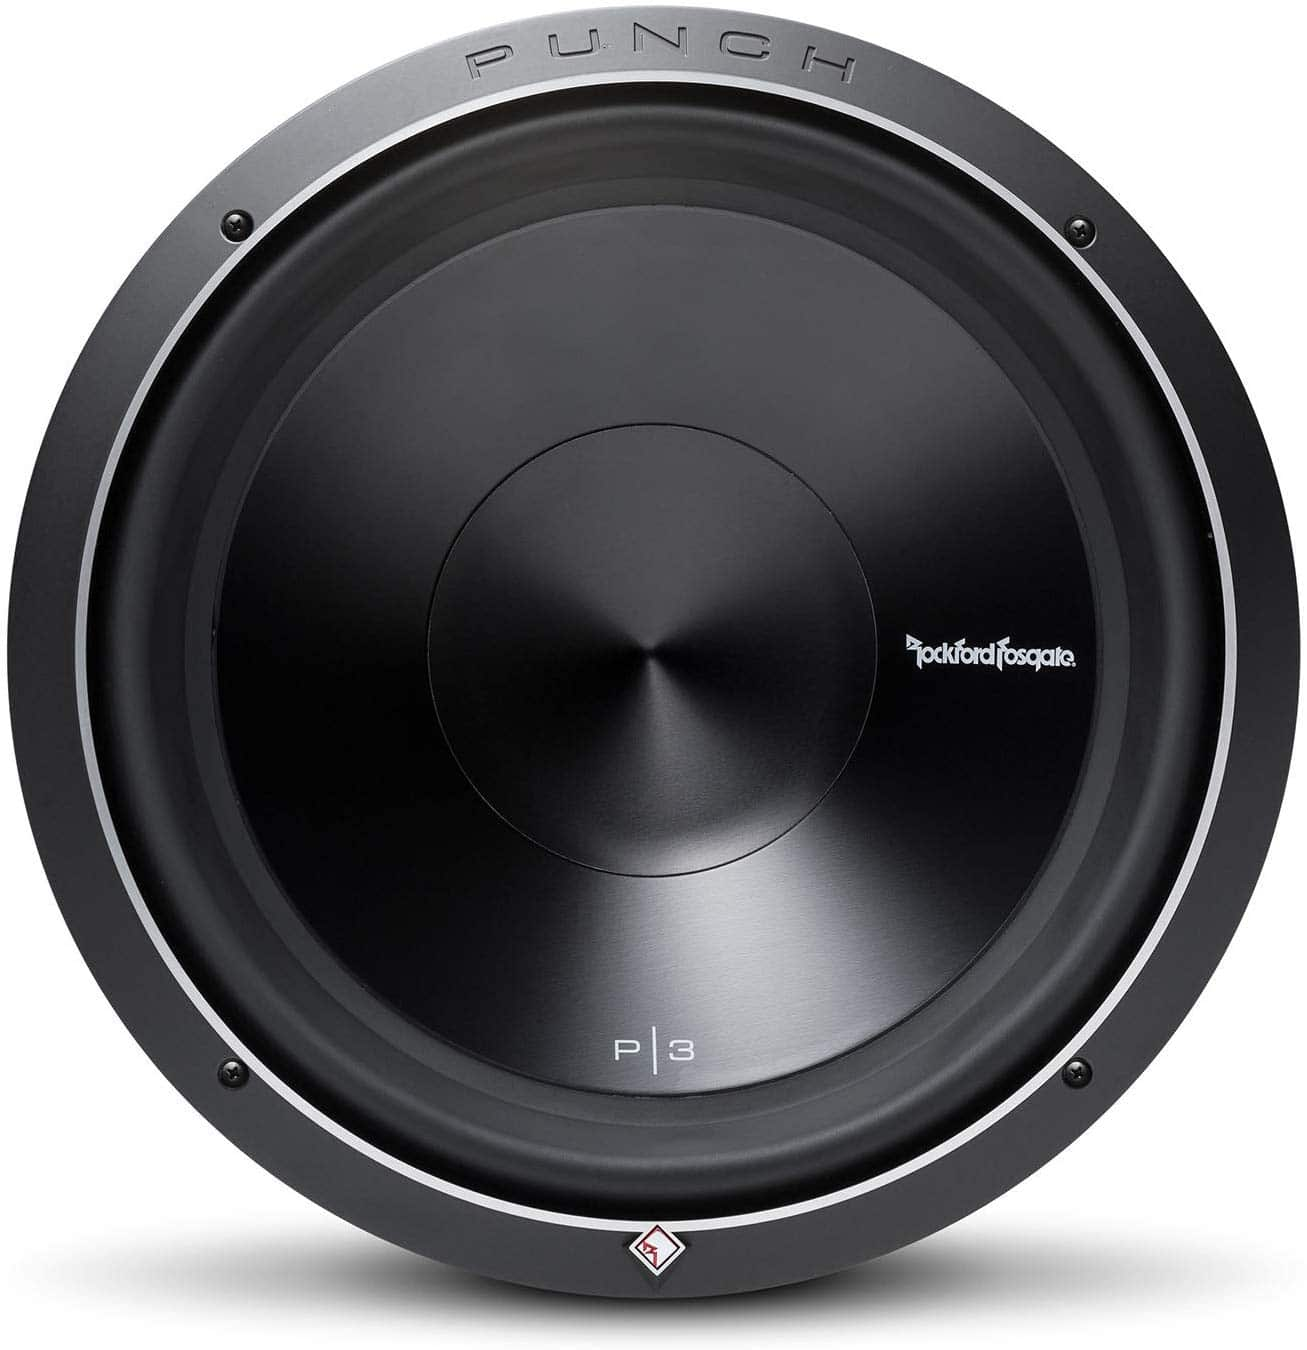 15 inches subs roundup - Rockford Fosgate P3D2-15